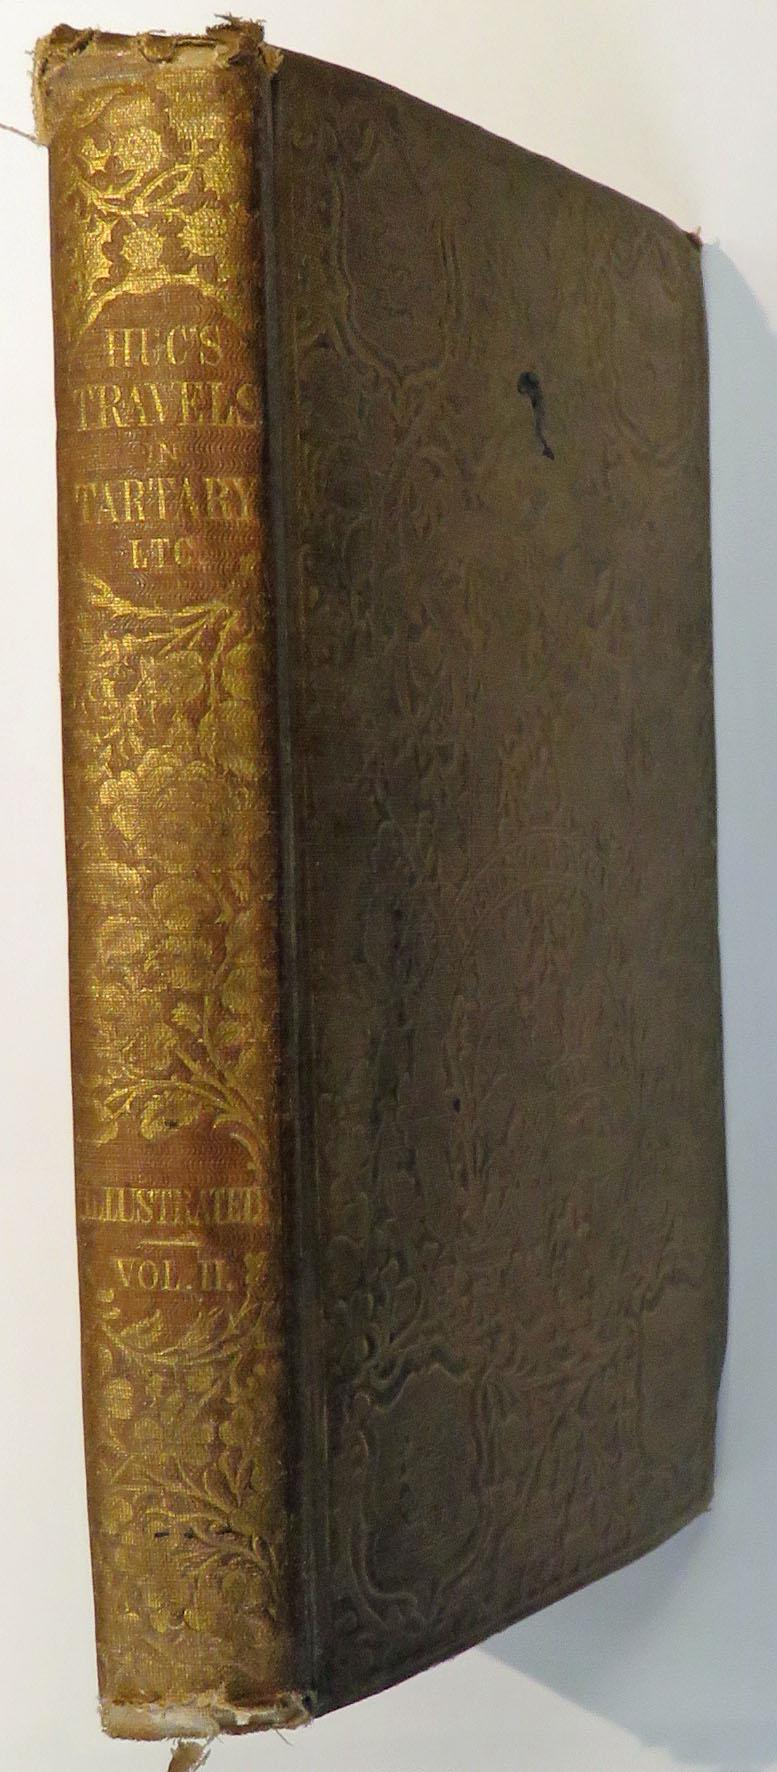 Travels in Tartary, Thibet, and China During the Years 1844-5-6 Volume II Only